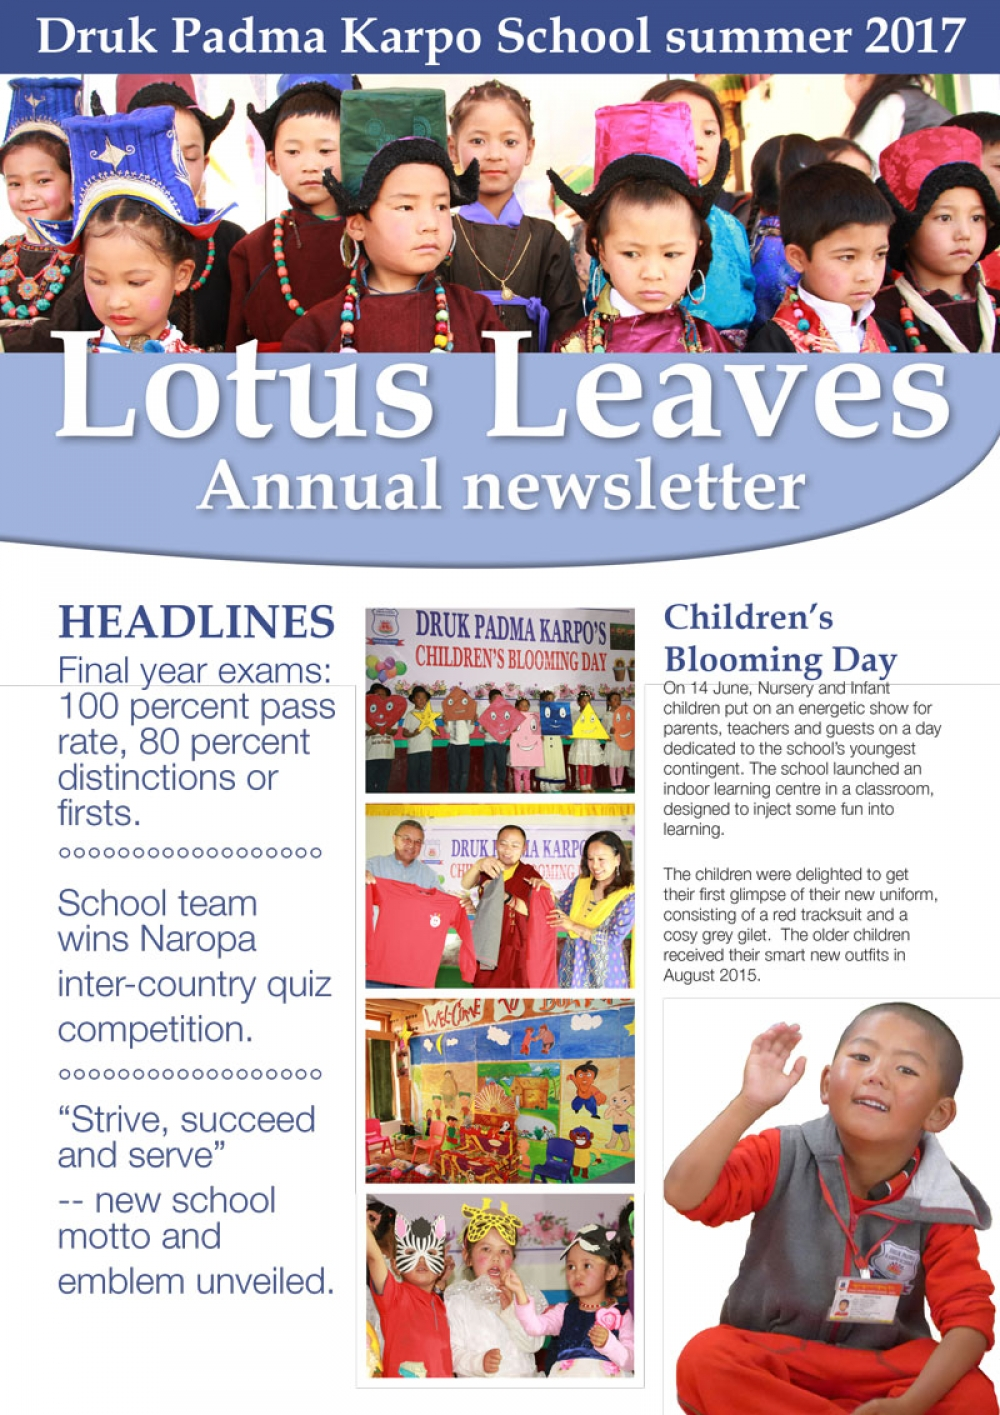 Lotus Leaves 2017